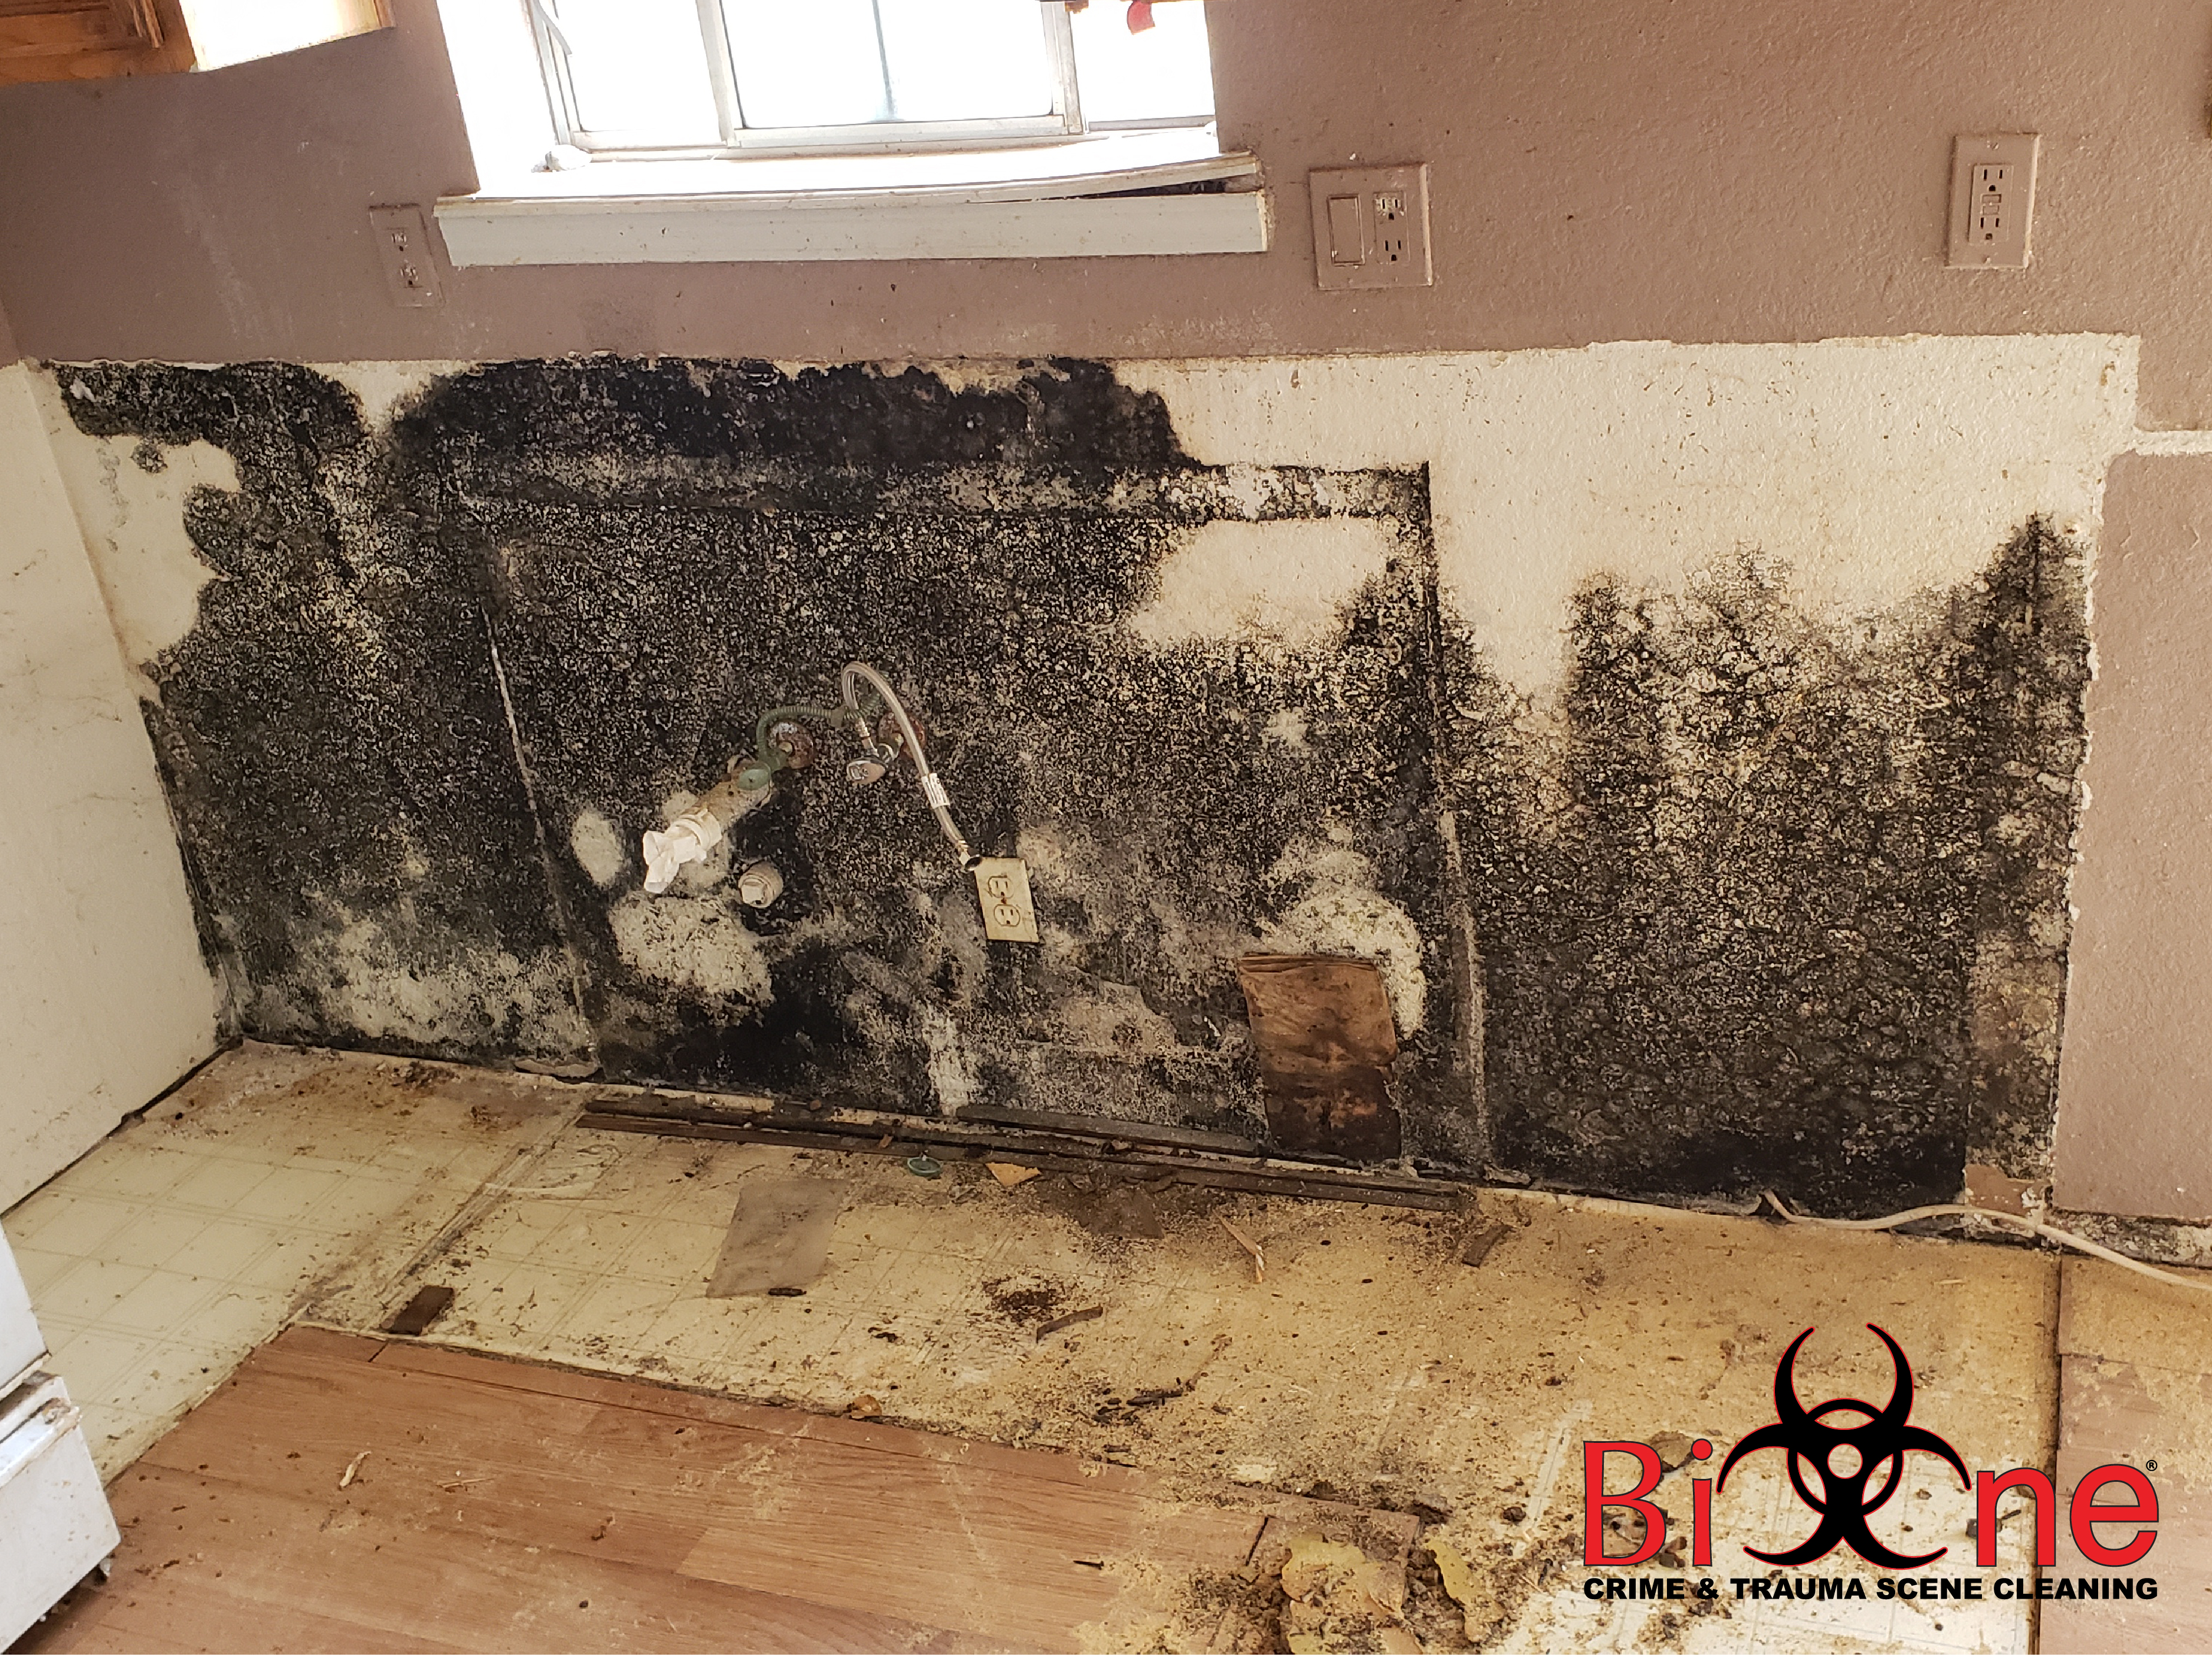 Mold Testing and Mold Remediation Services - What You Need to Know